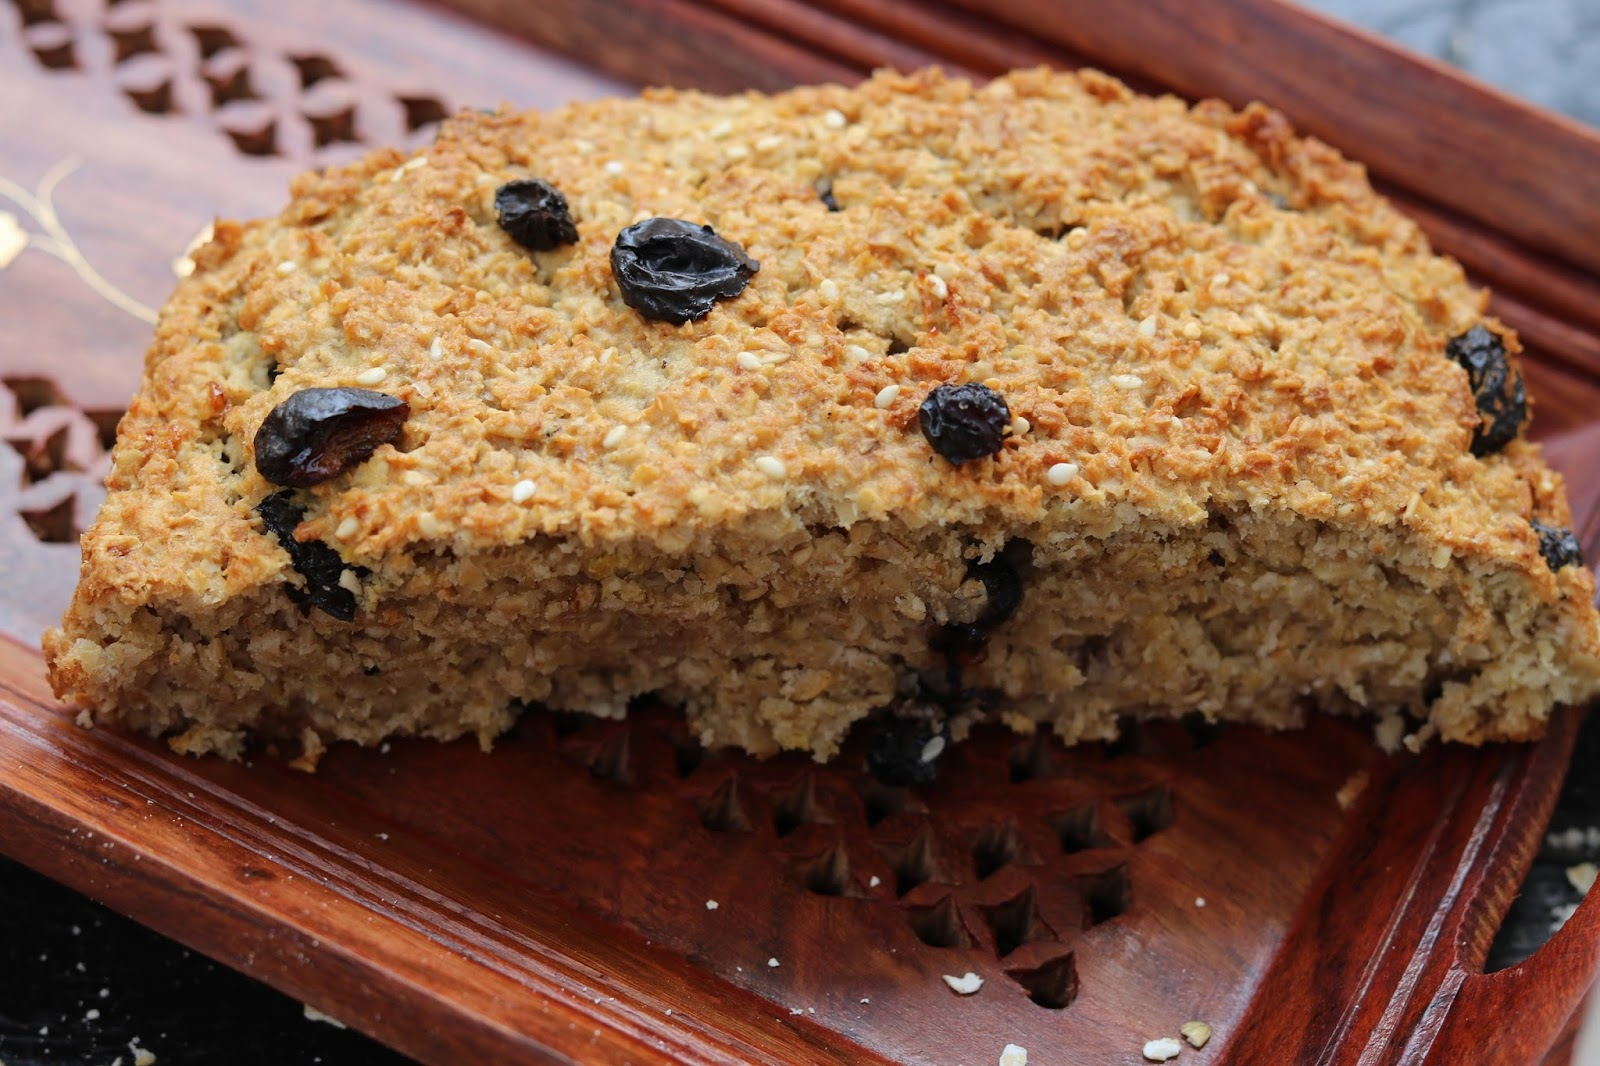 Cake Recipe With Kadai: Healthy Oats Cake (NO Flour, Oil, Butter)